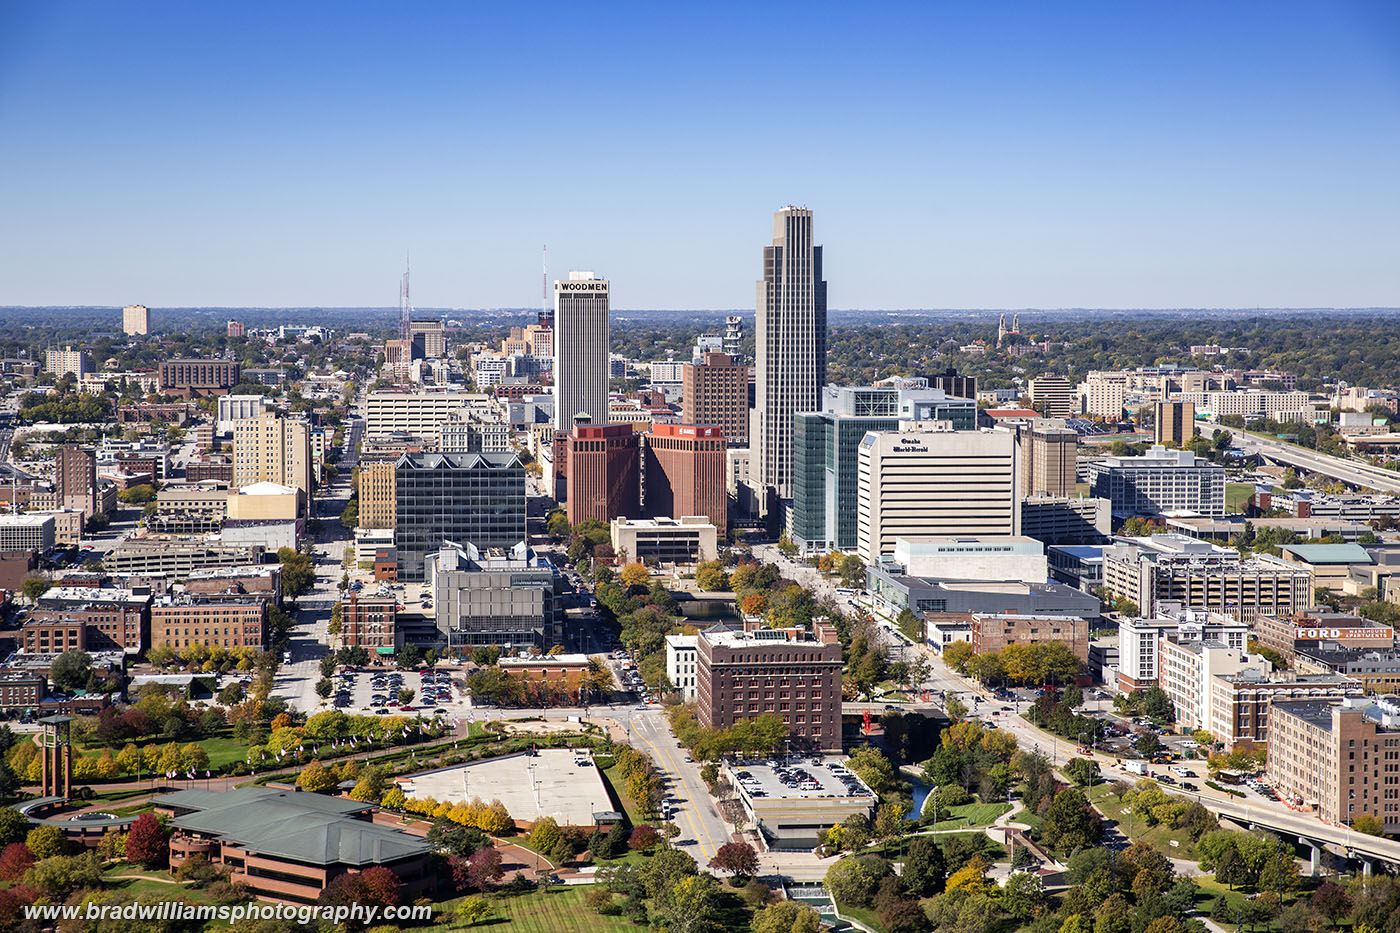 Aerial photo of Omaha, Nebraska photographed from helicopter in 2018.